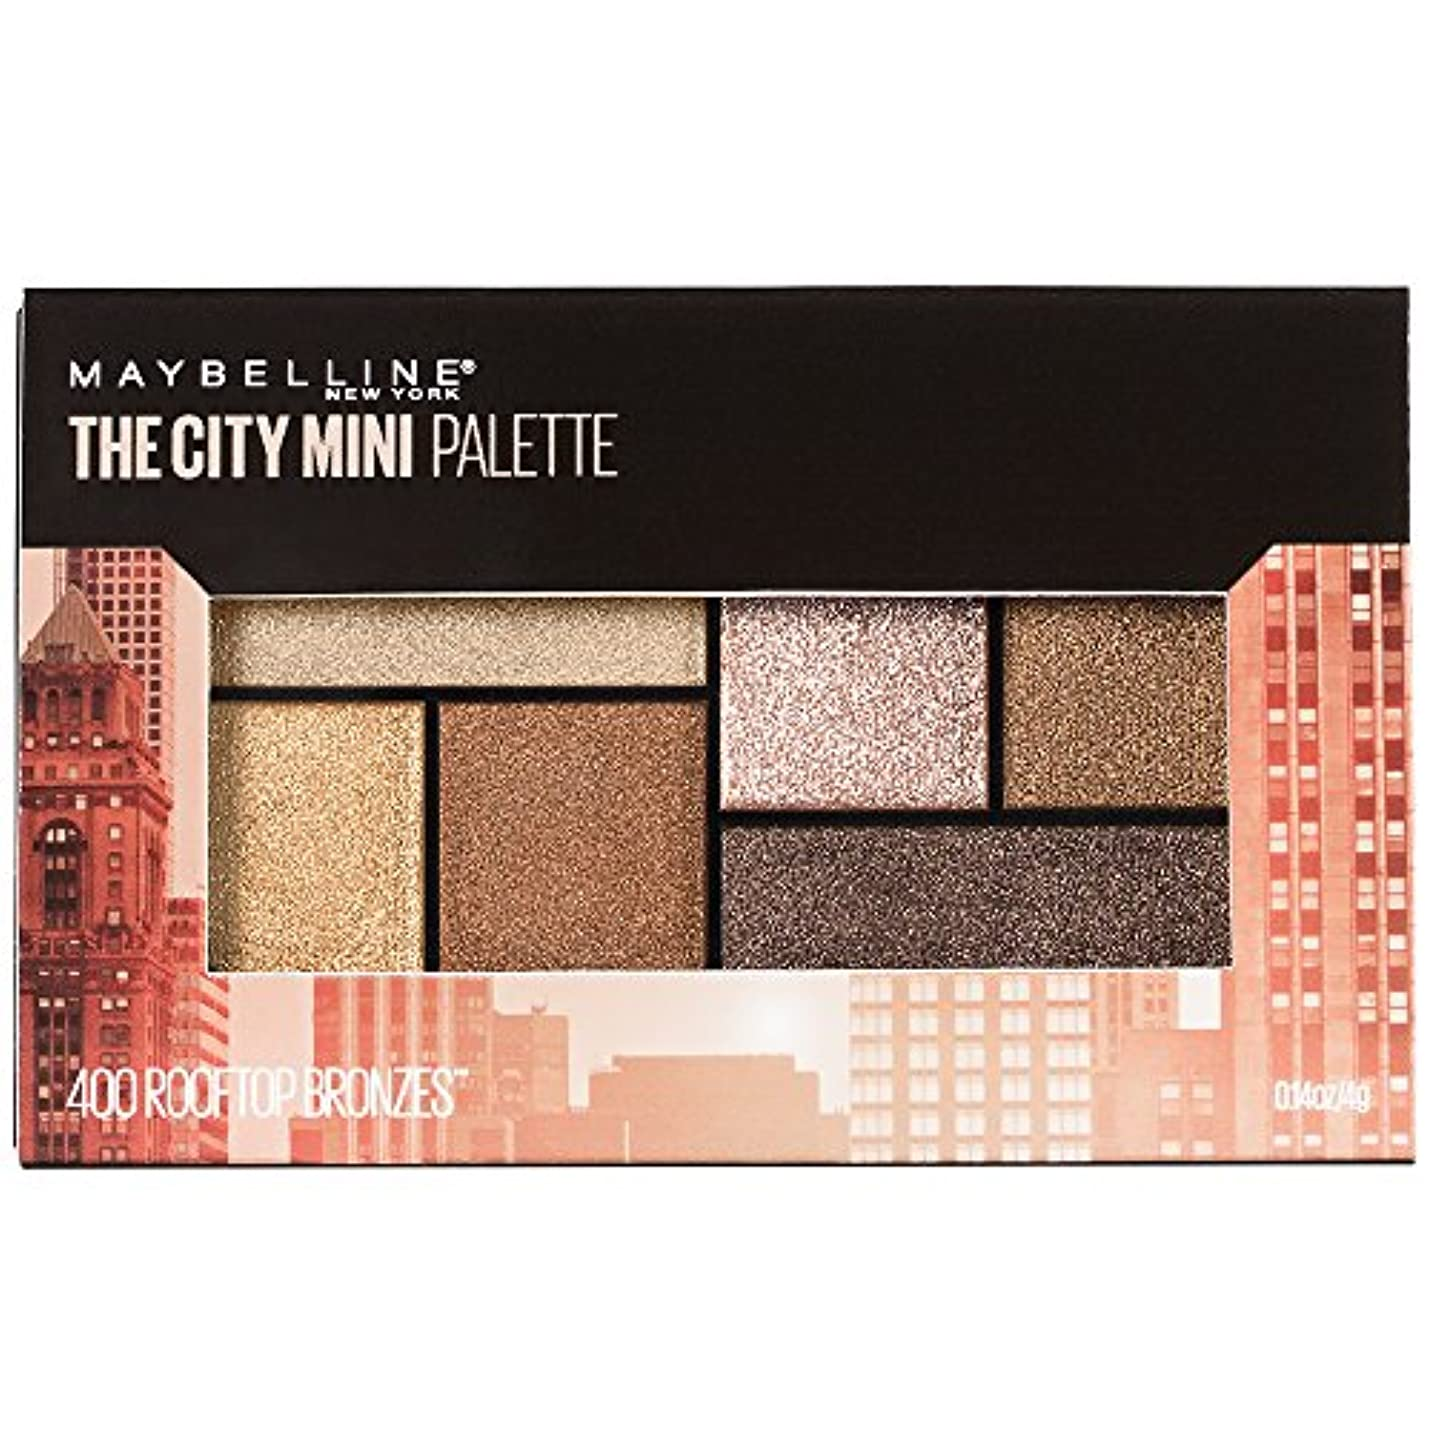 MAYBELLINE The City Mini Palette - Rooftop Bronzes (並行輸入品)